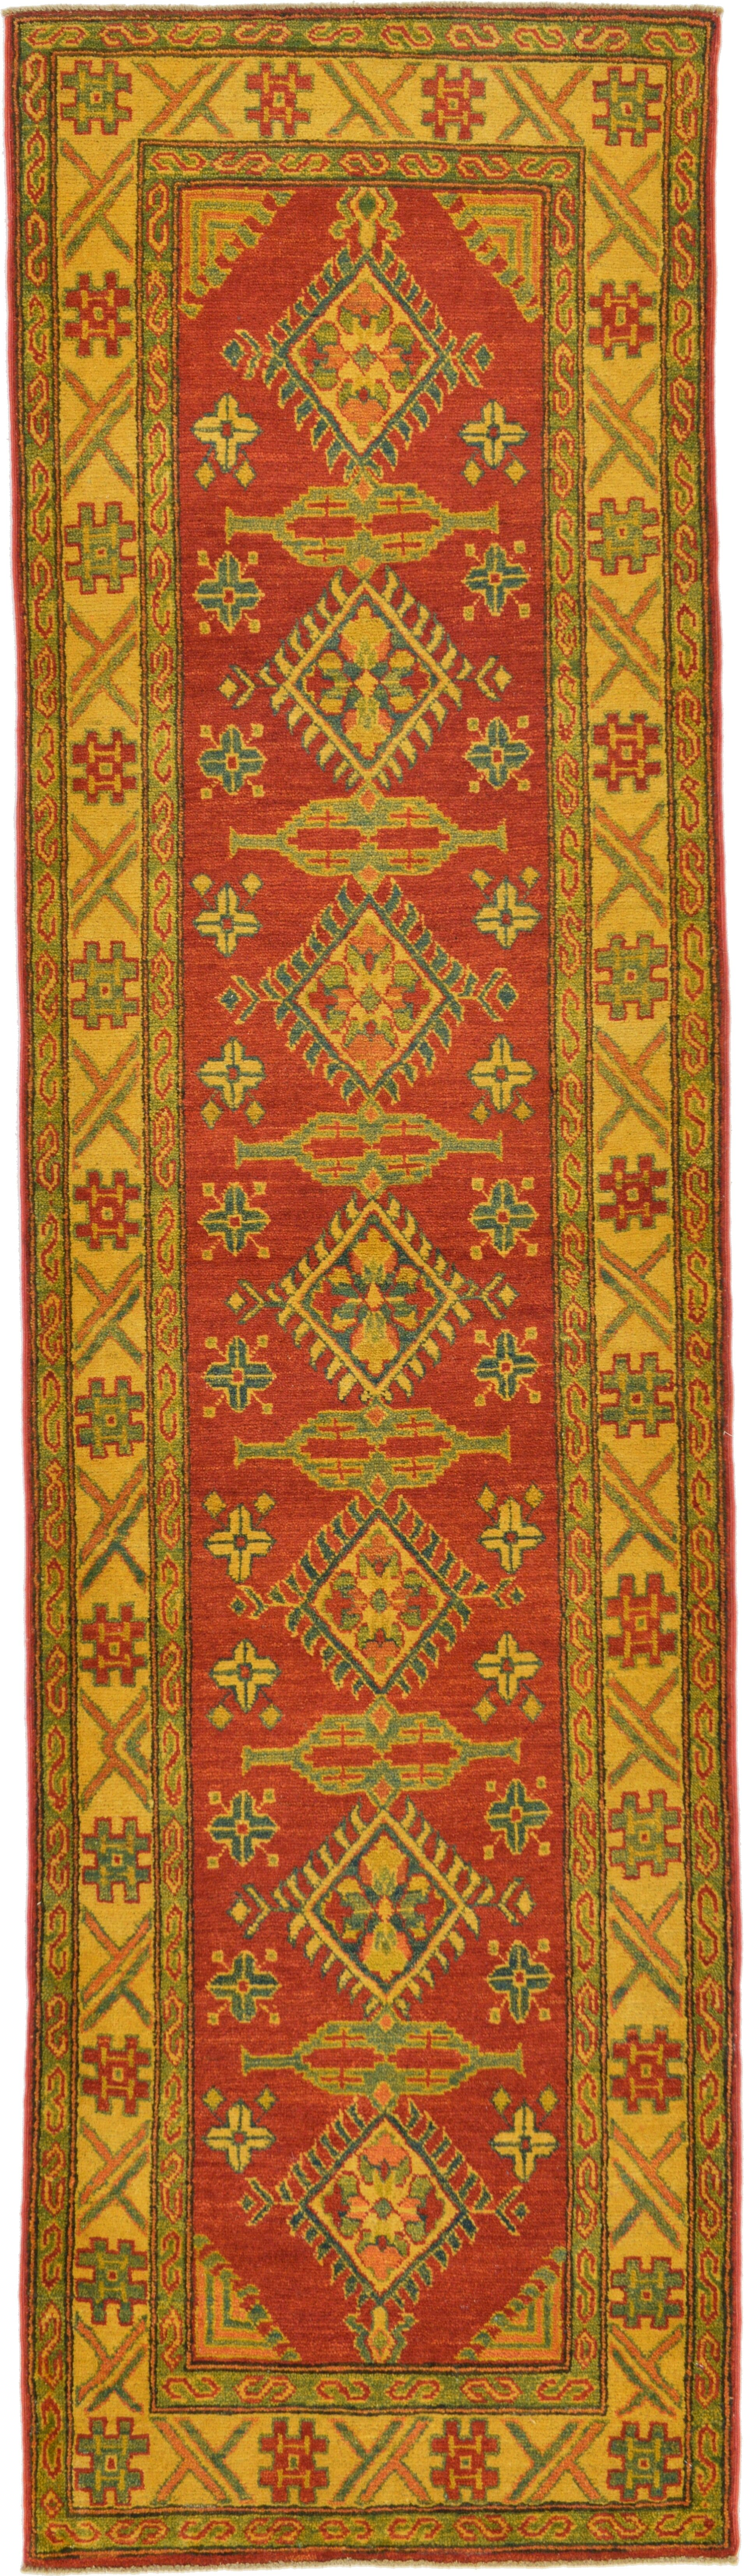 One-of-a-Kind Alayna Hand-Knotted Wool Yellow/Red/Green Area Rug